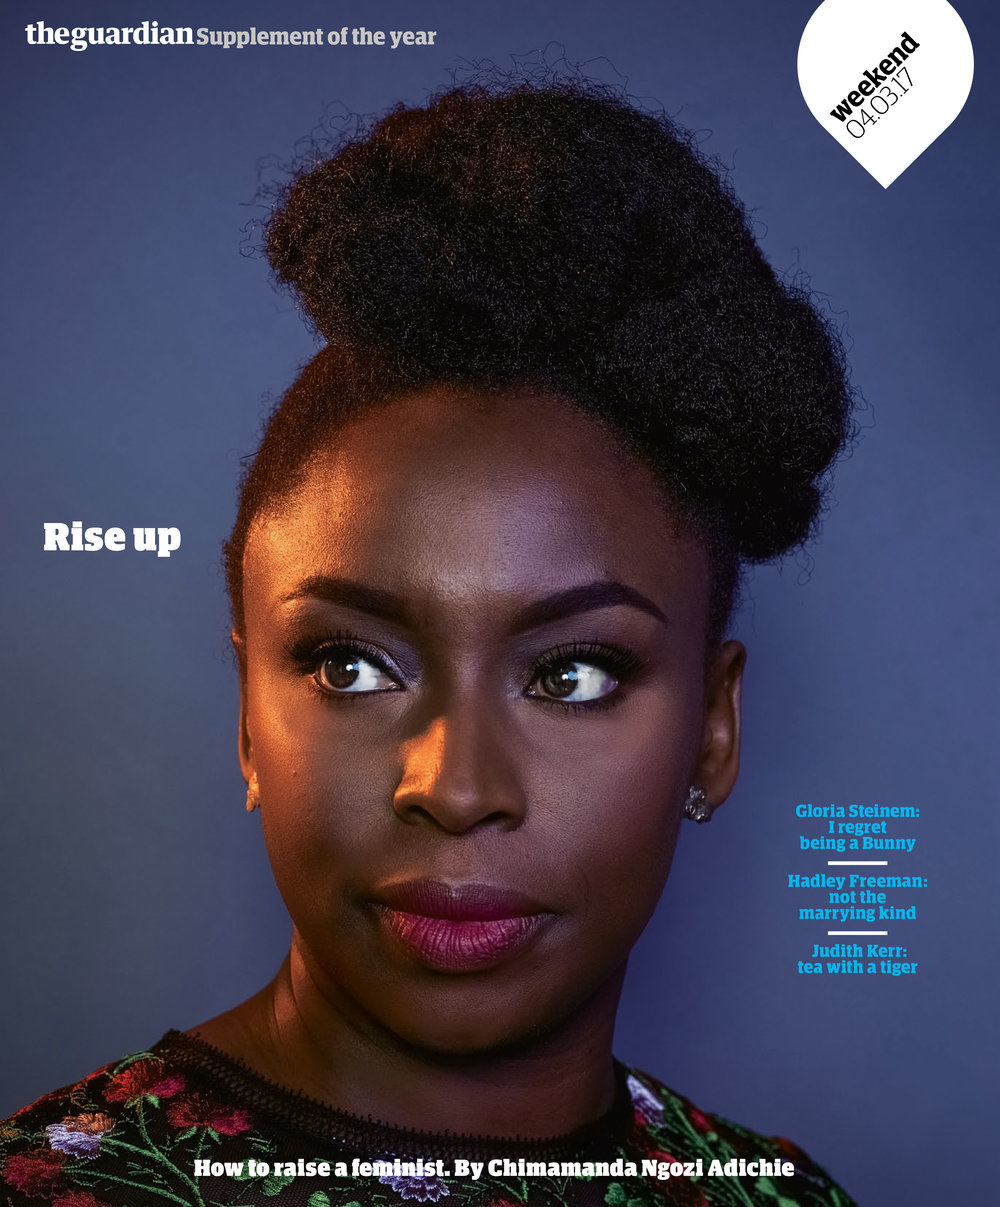 Just a quick note to share a shoot that just came out today for the Guardian Weekend Magazine. I had the pleasure of photographing one of my favorite authors, Chimamanda Ngozi Adichie for the Guardian Weekend Magazine. See the inside spread here.